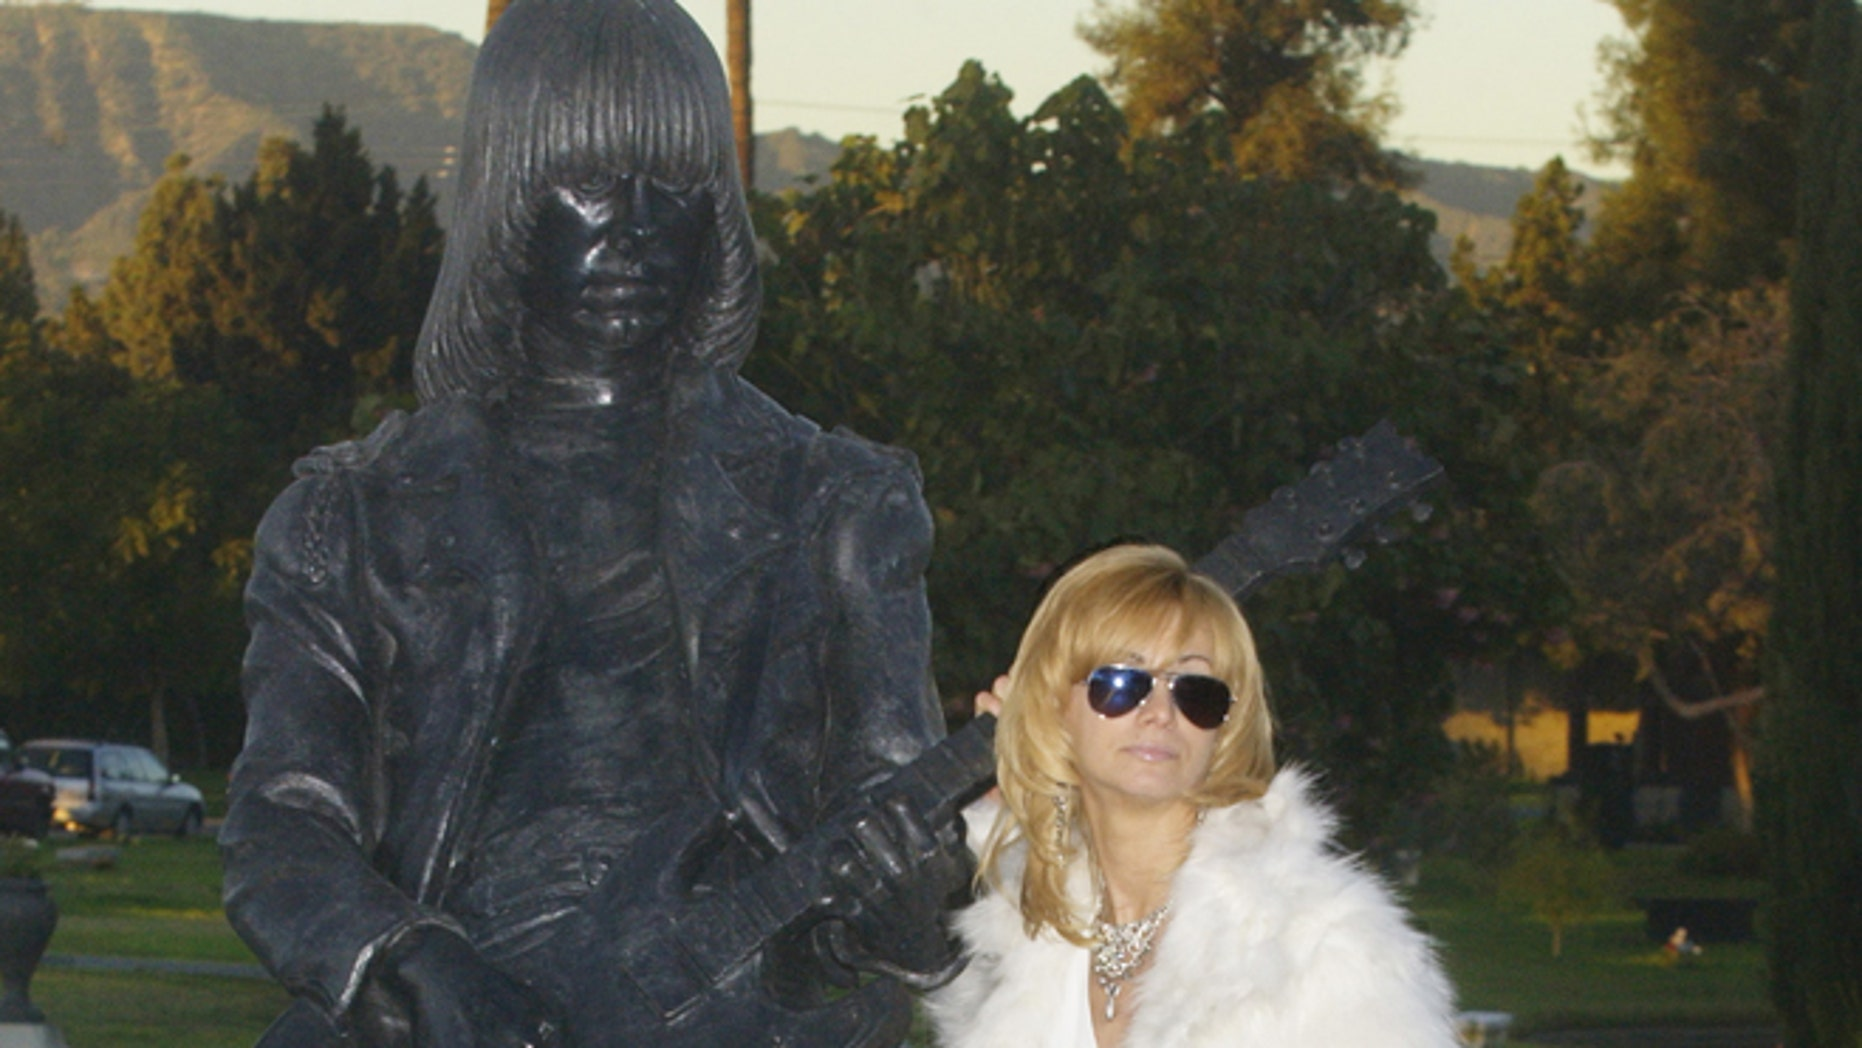 Linda Ramone, widow of Johnny Ramone poses next to a statue of his likeness in Los Angeles.